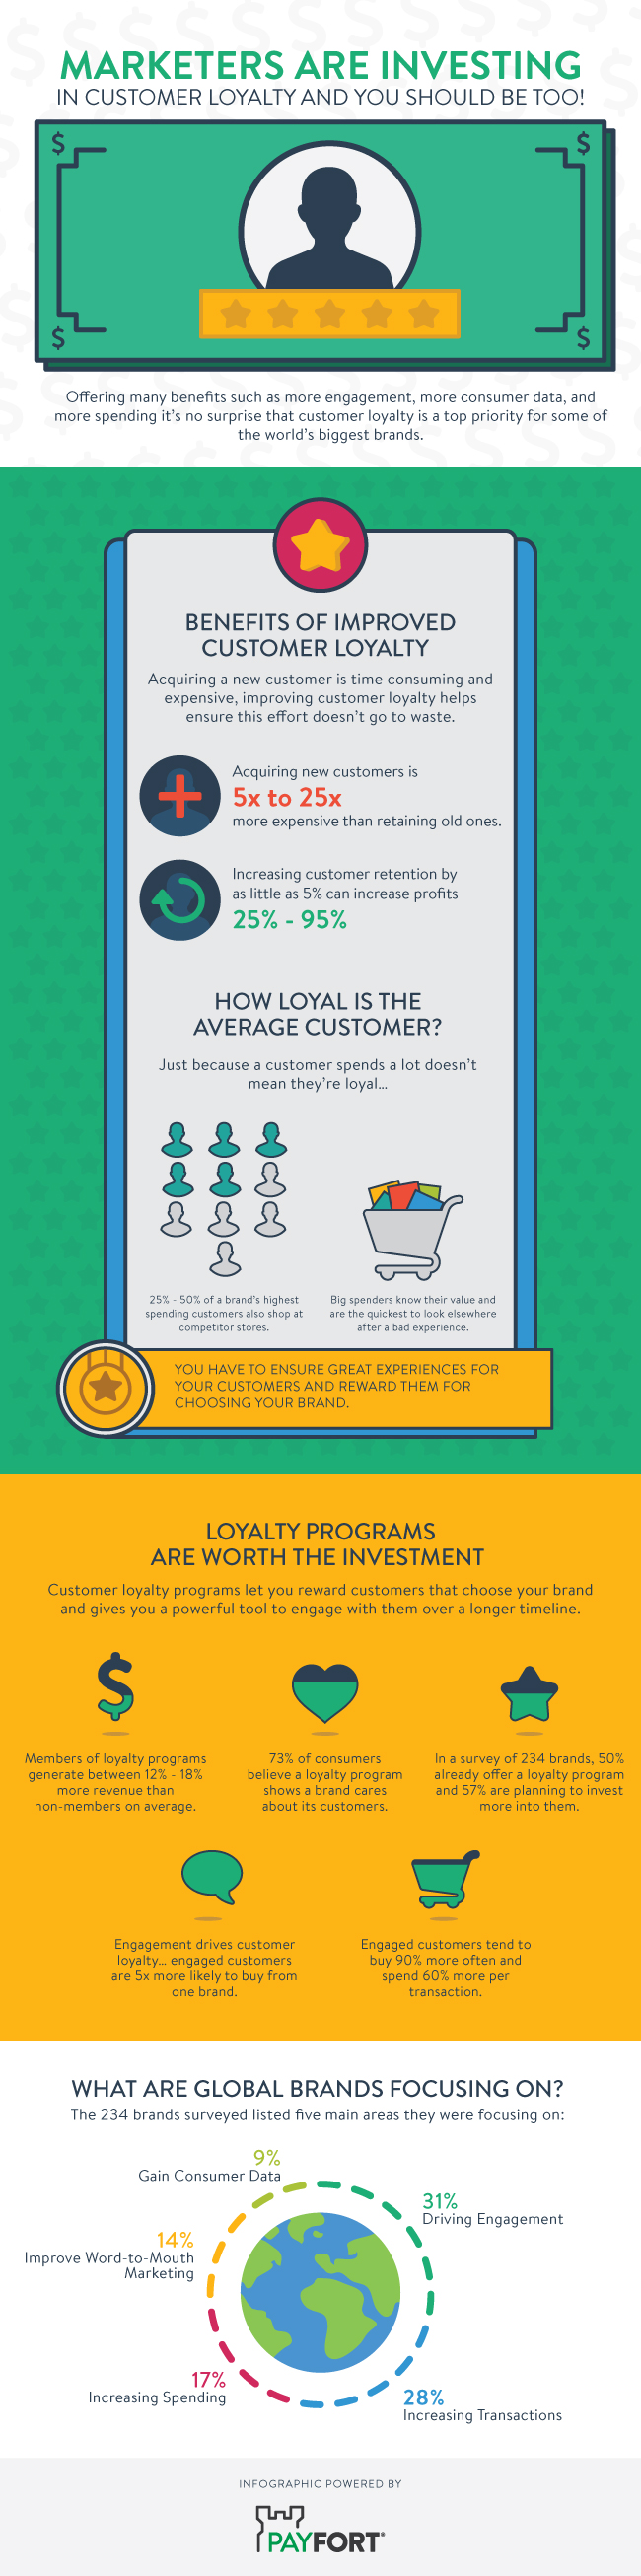 Infographic Marketers Are Investing In Customer Loyalty And You Should Too